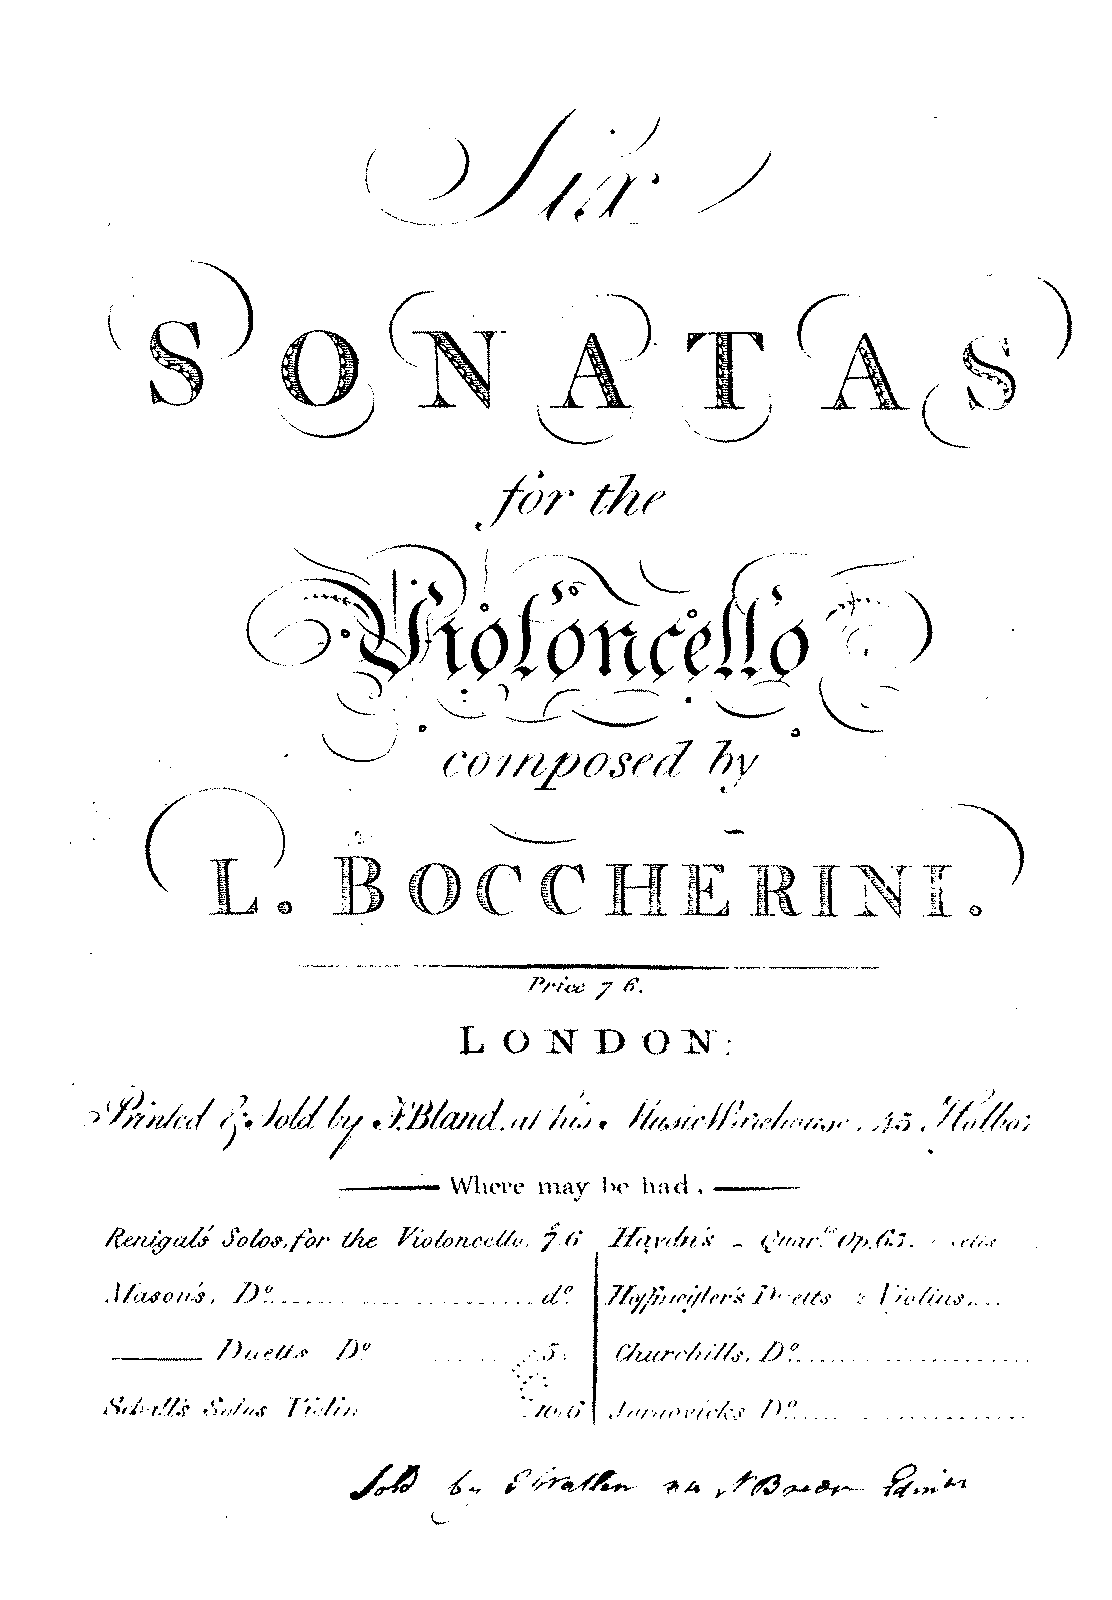 PMLP138477-Boccherini - Cello Sonata No5 in F Major (London).pdf